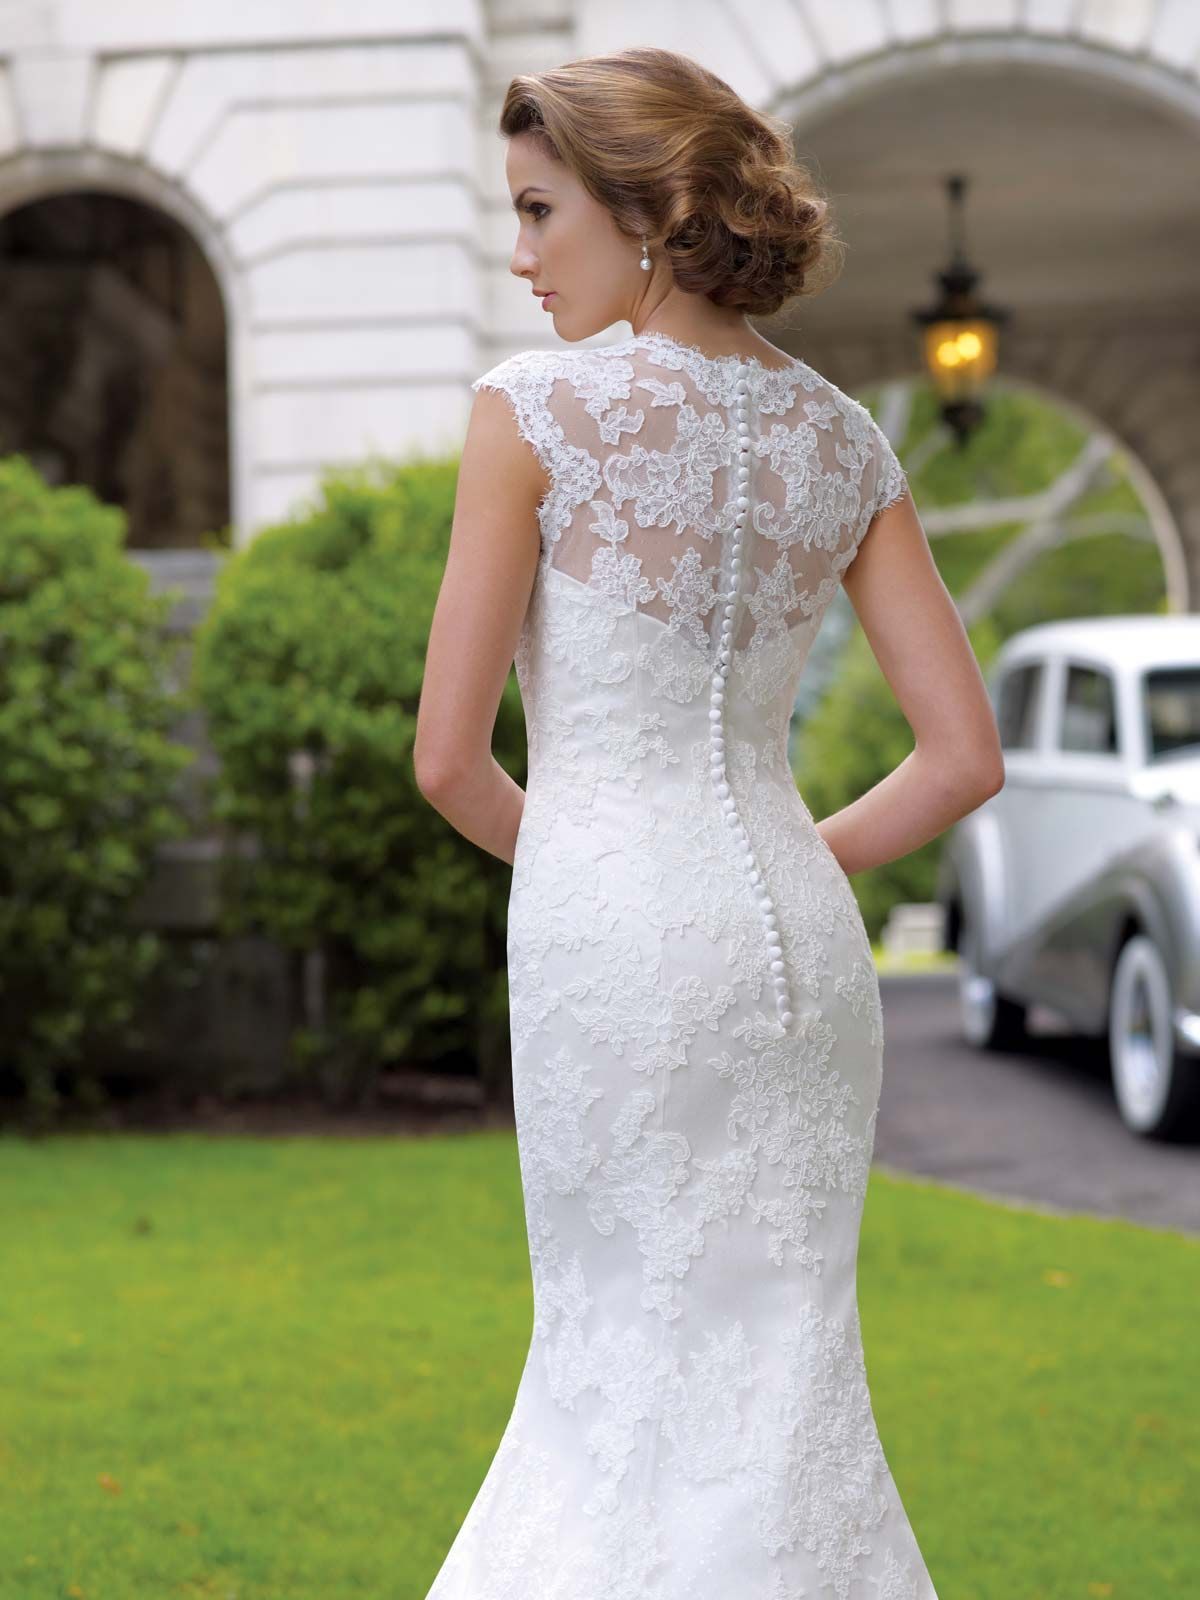 Lace Wedding Dress Buttons Down Back Google Search Wedding - Covered Back Wedding Dress